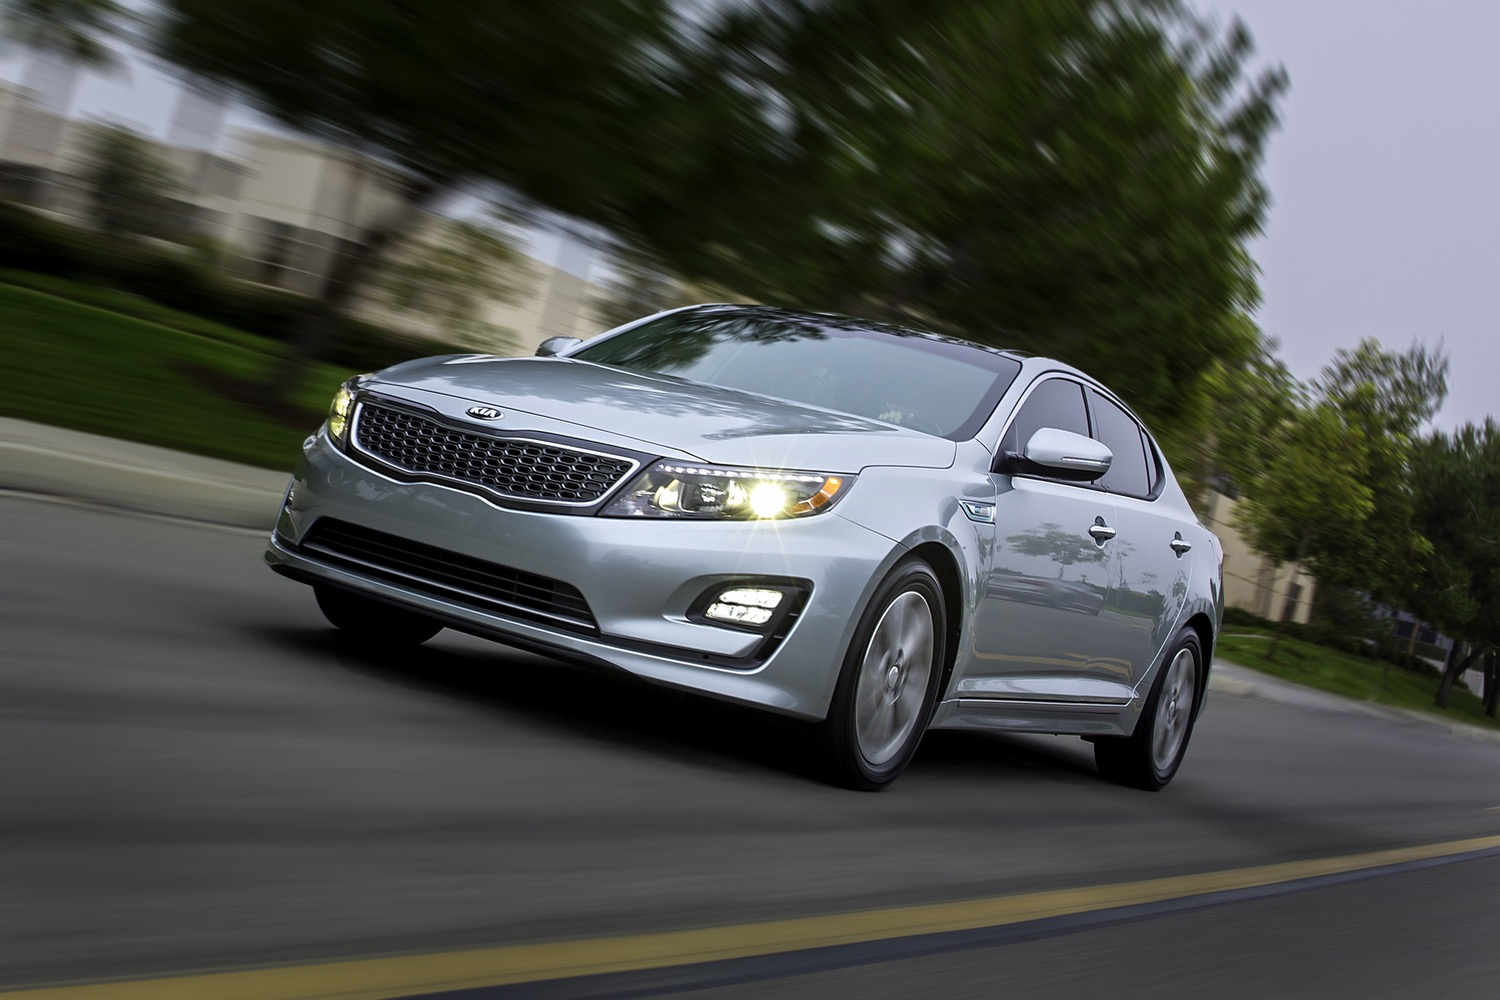 informations facelift optima photos makes com kia bestcarmag hybrid articles